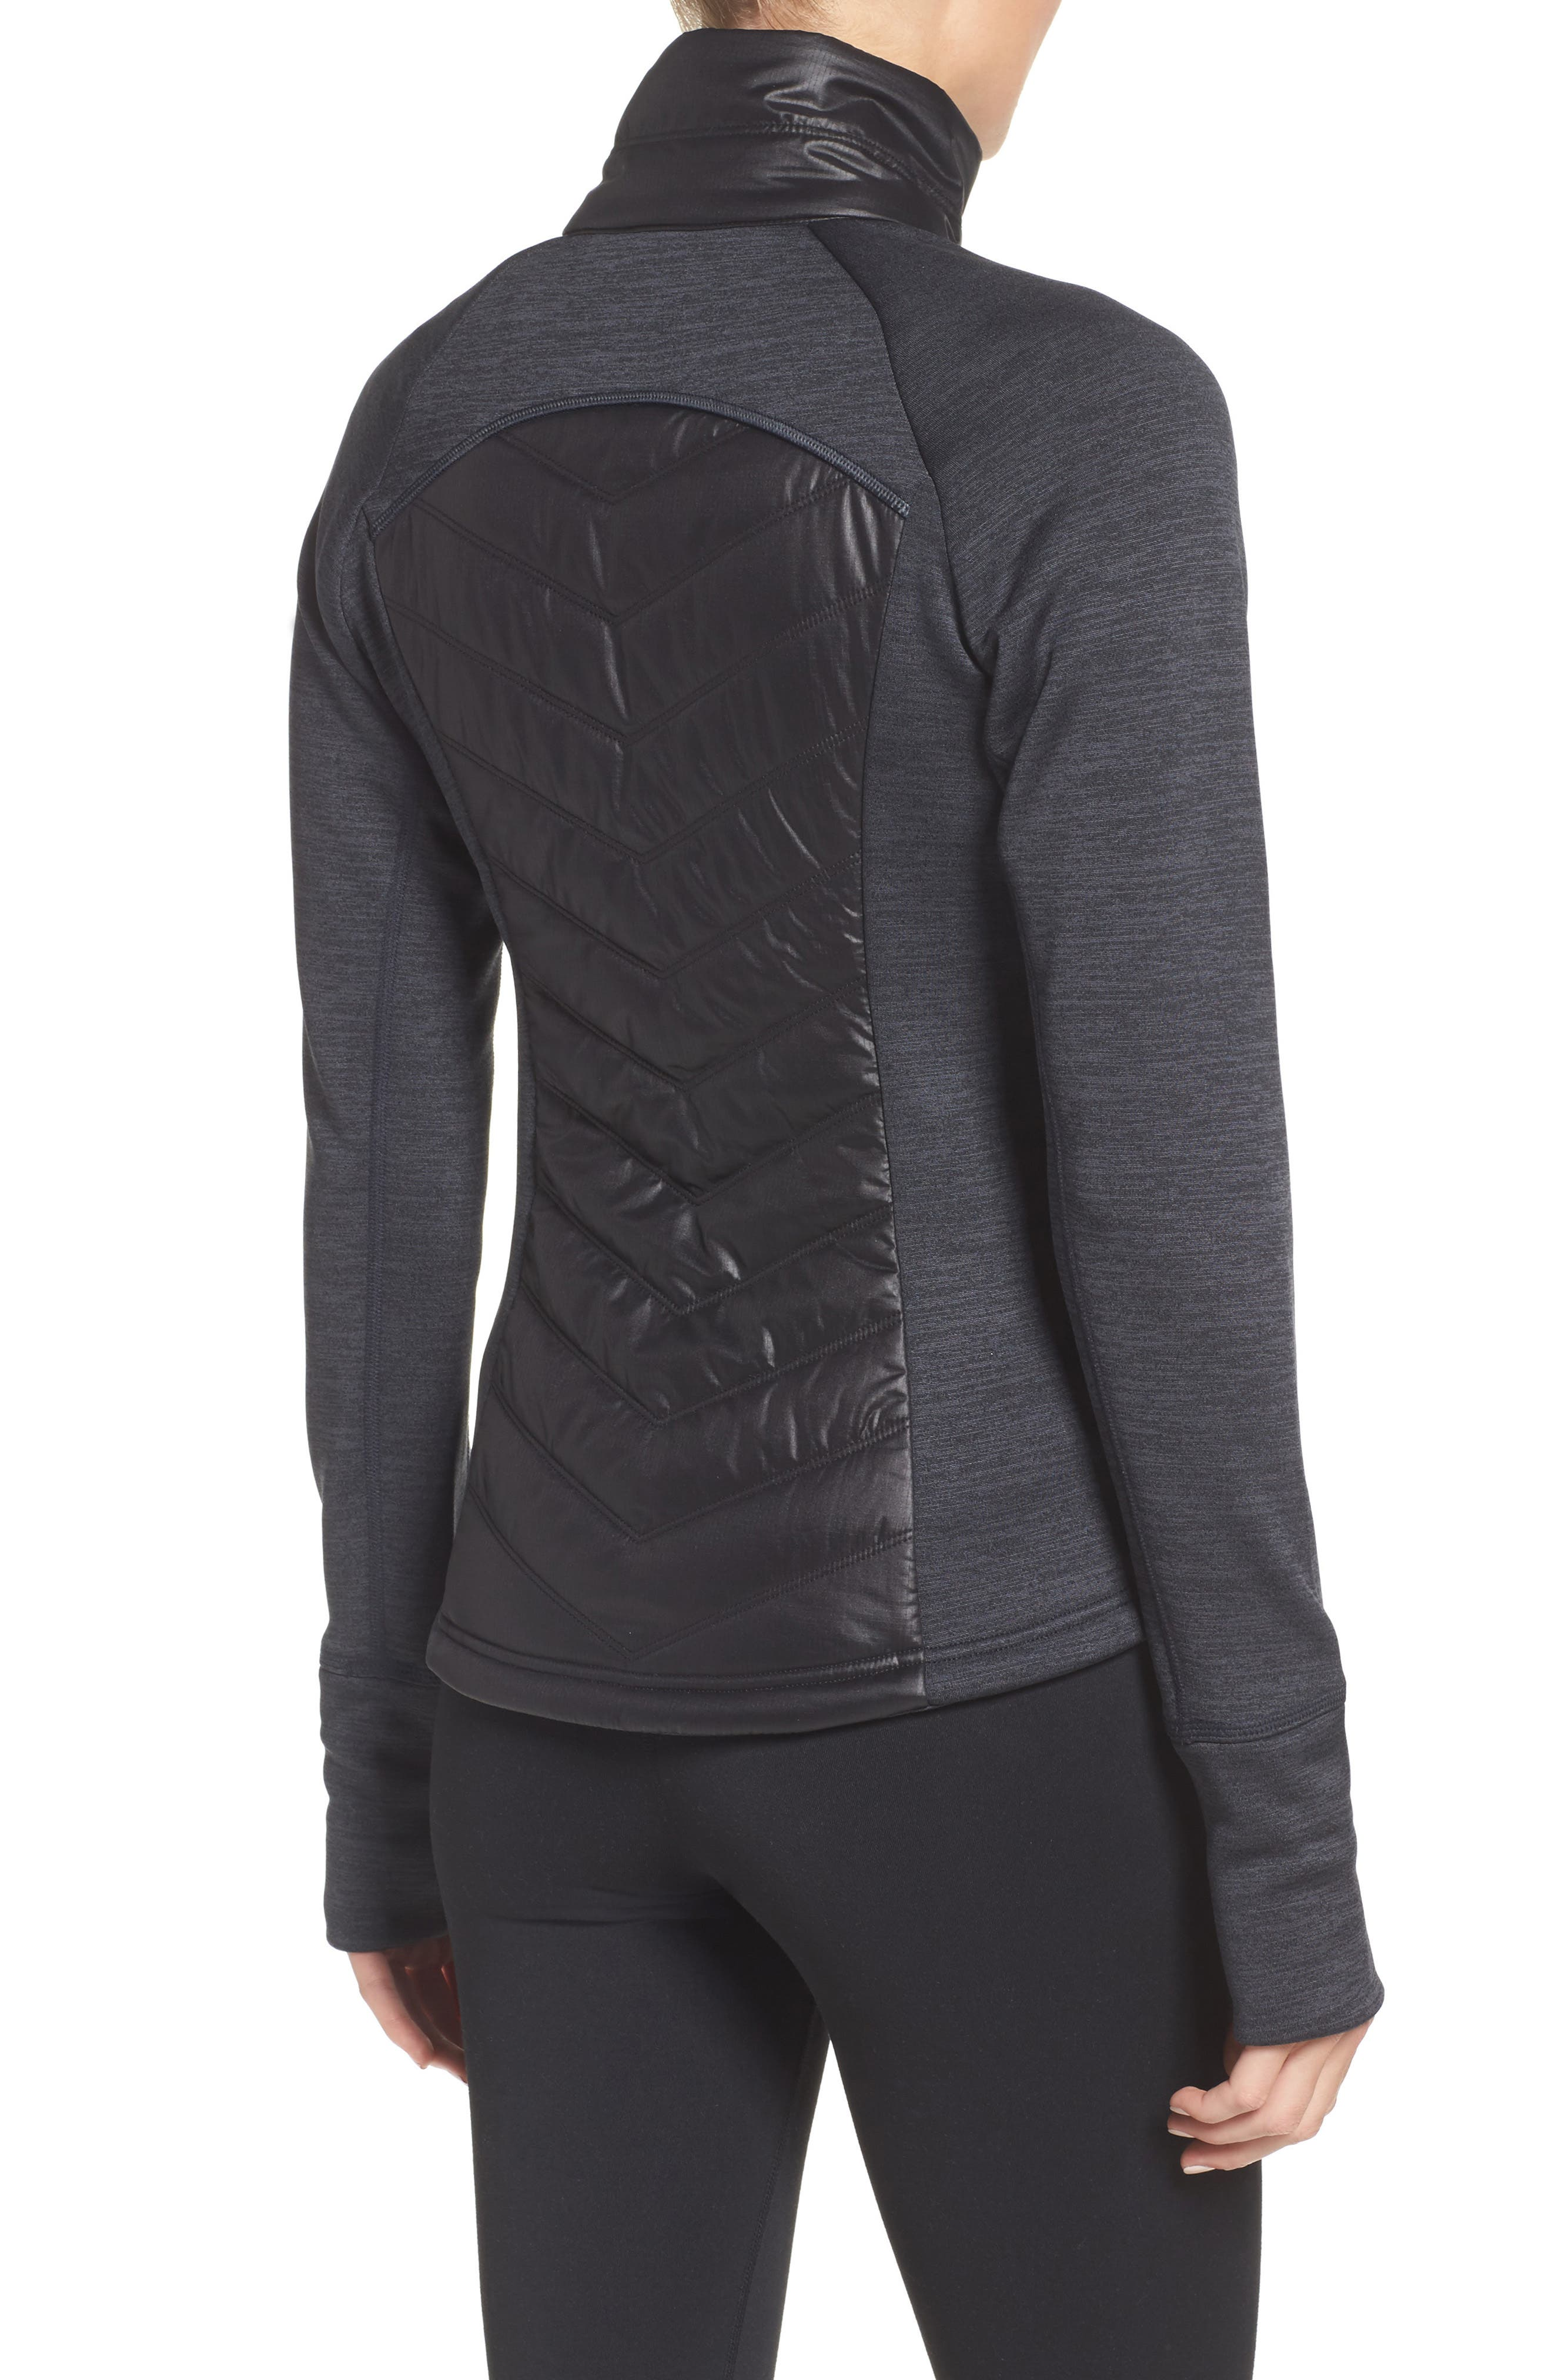 Zelfusion Reflective Quilted Jacket,                             Alternate thumbnail 2, color,                             001